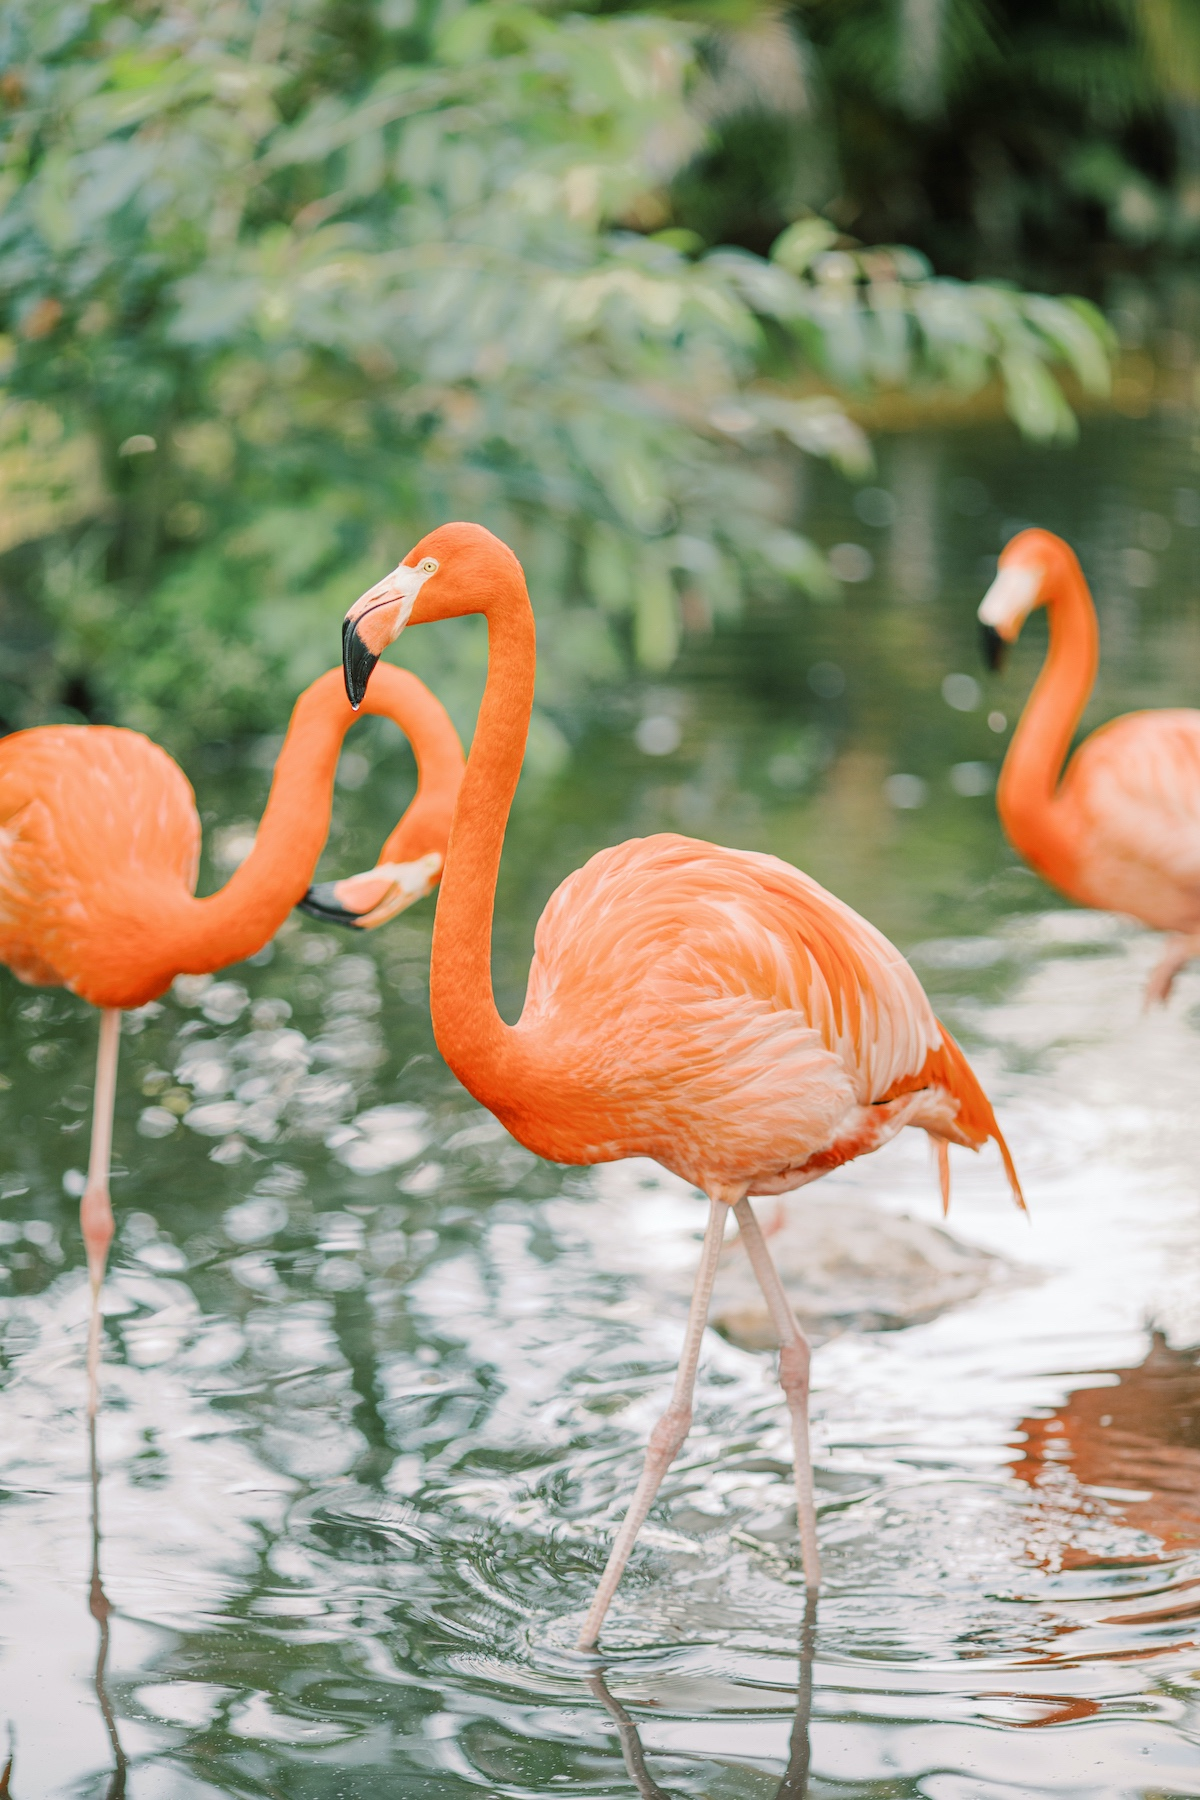 Everglades Wonder Garden styled with flamingos